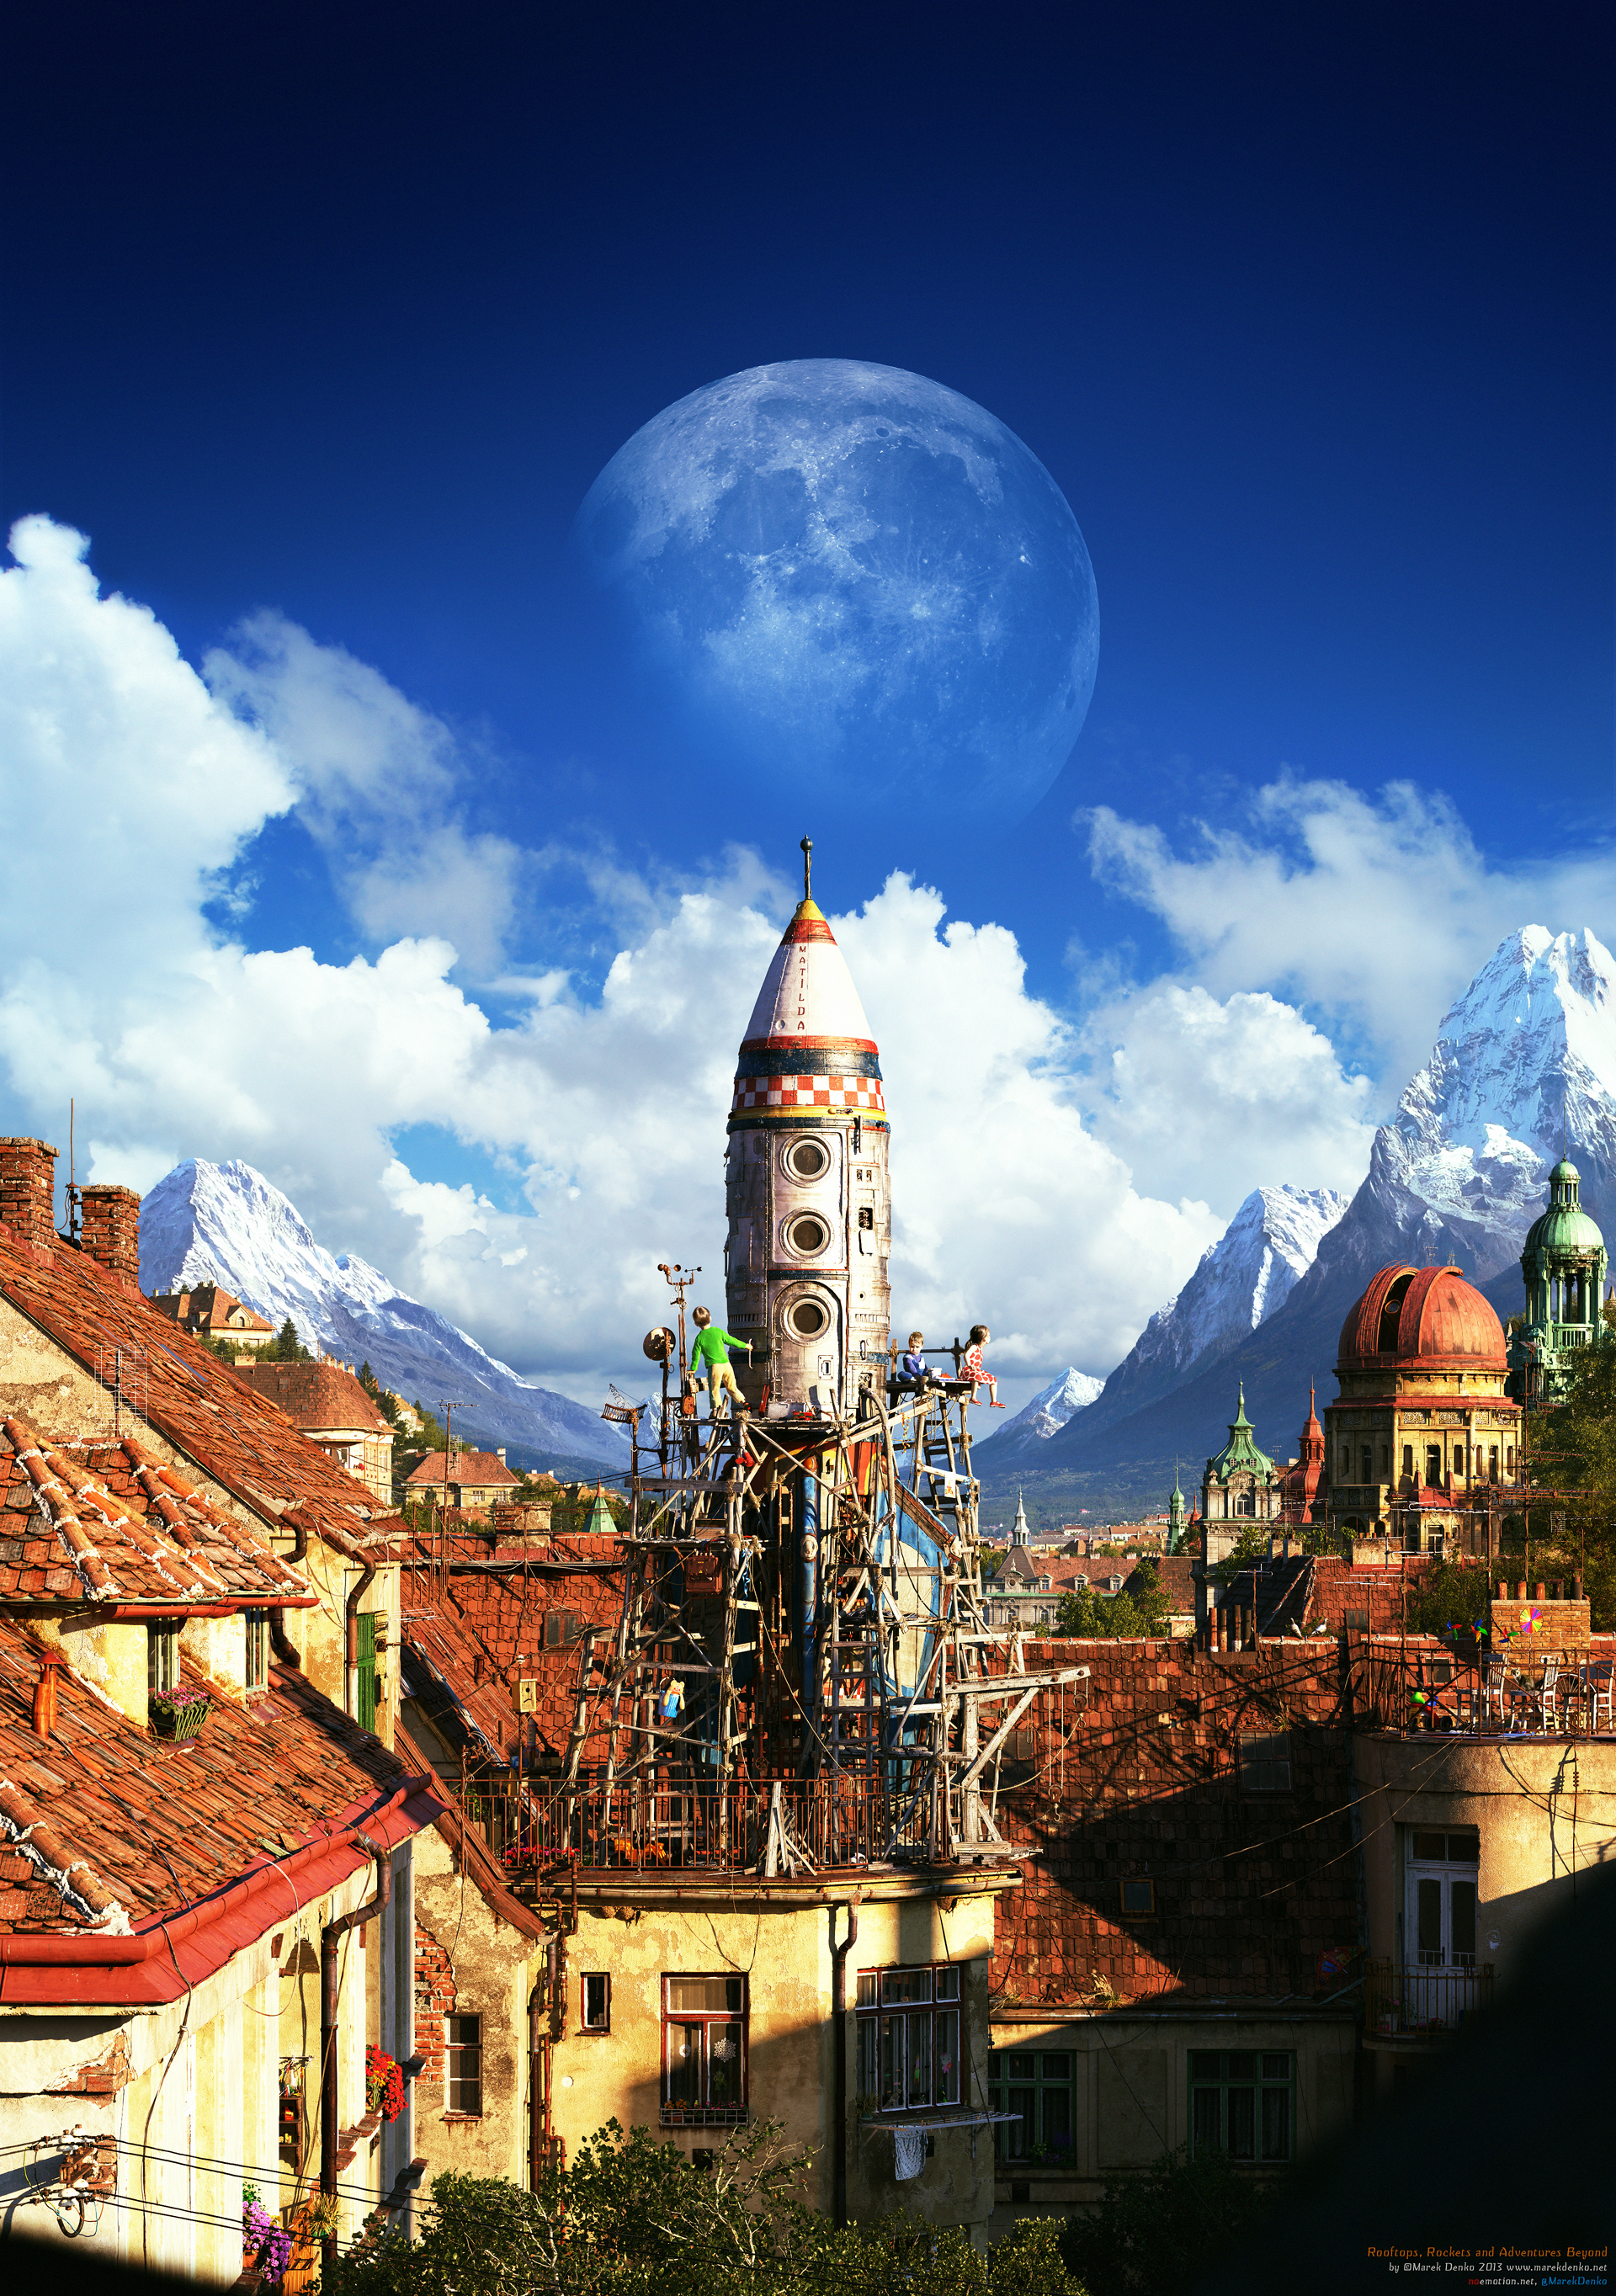 Marek Denko - Rooftops, Rockets and Adventures Beyond